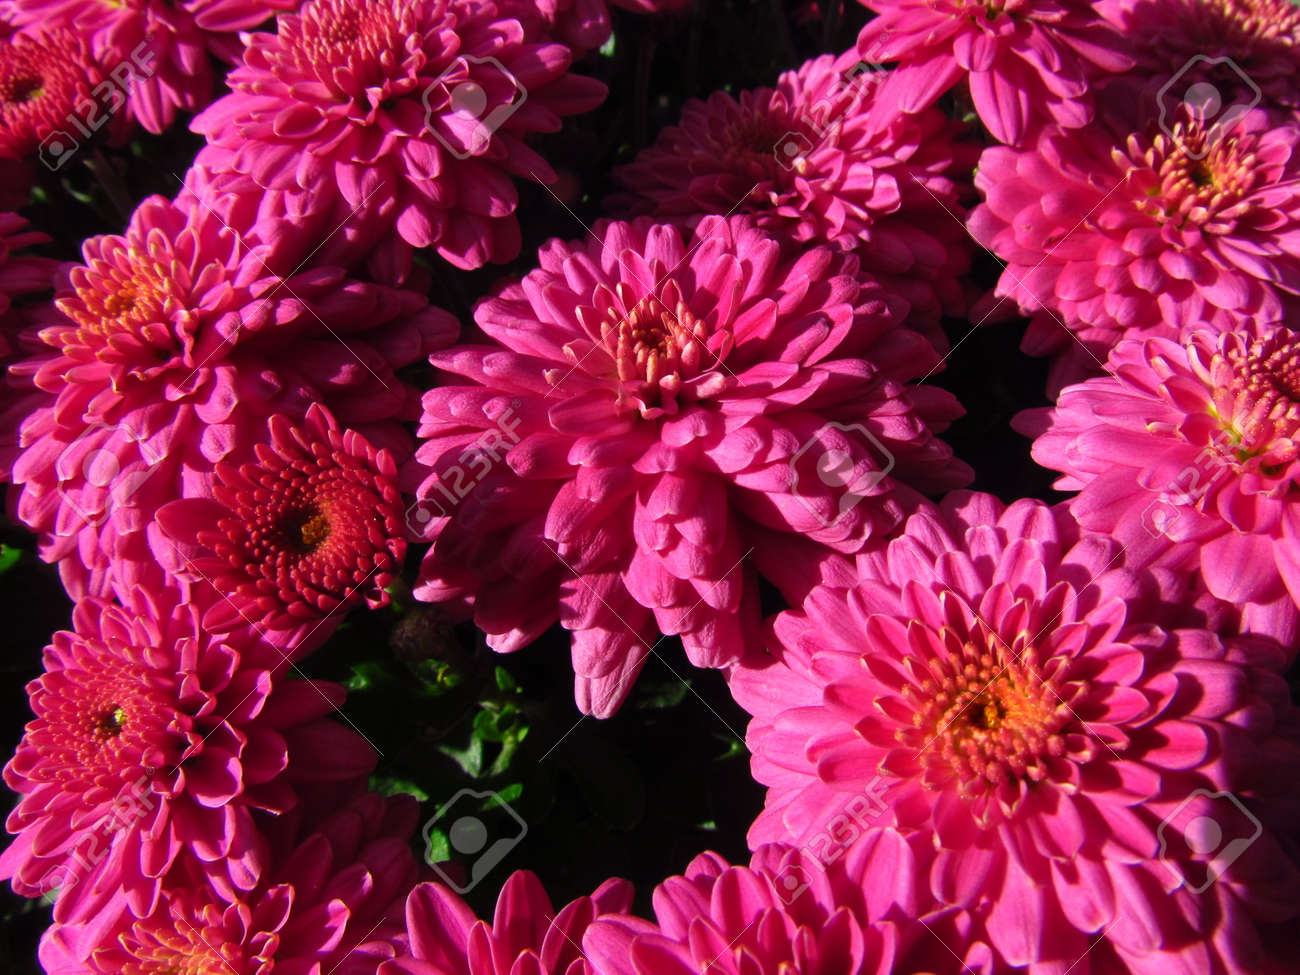 Chrysanthemum Other Names Mums Or Chrysanth Dark Pink Autumn